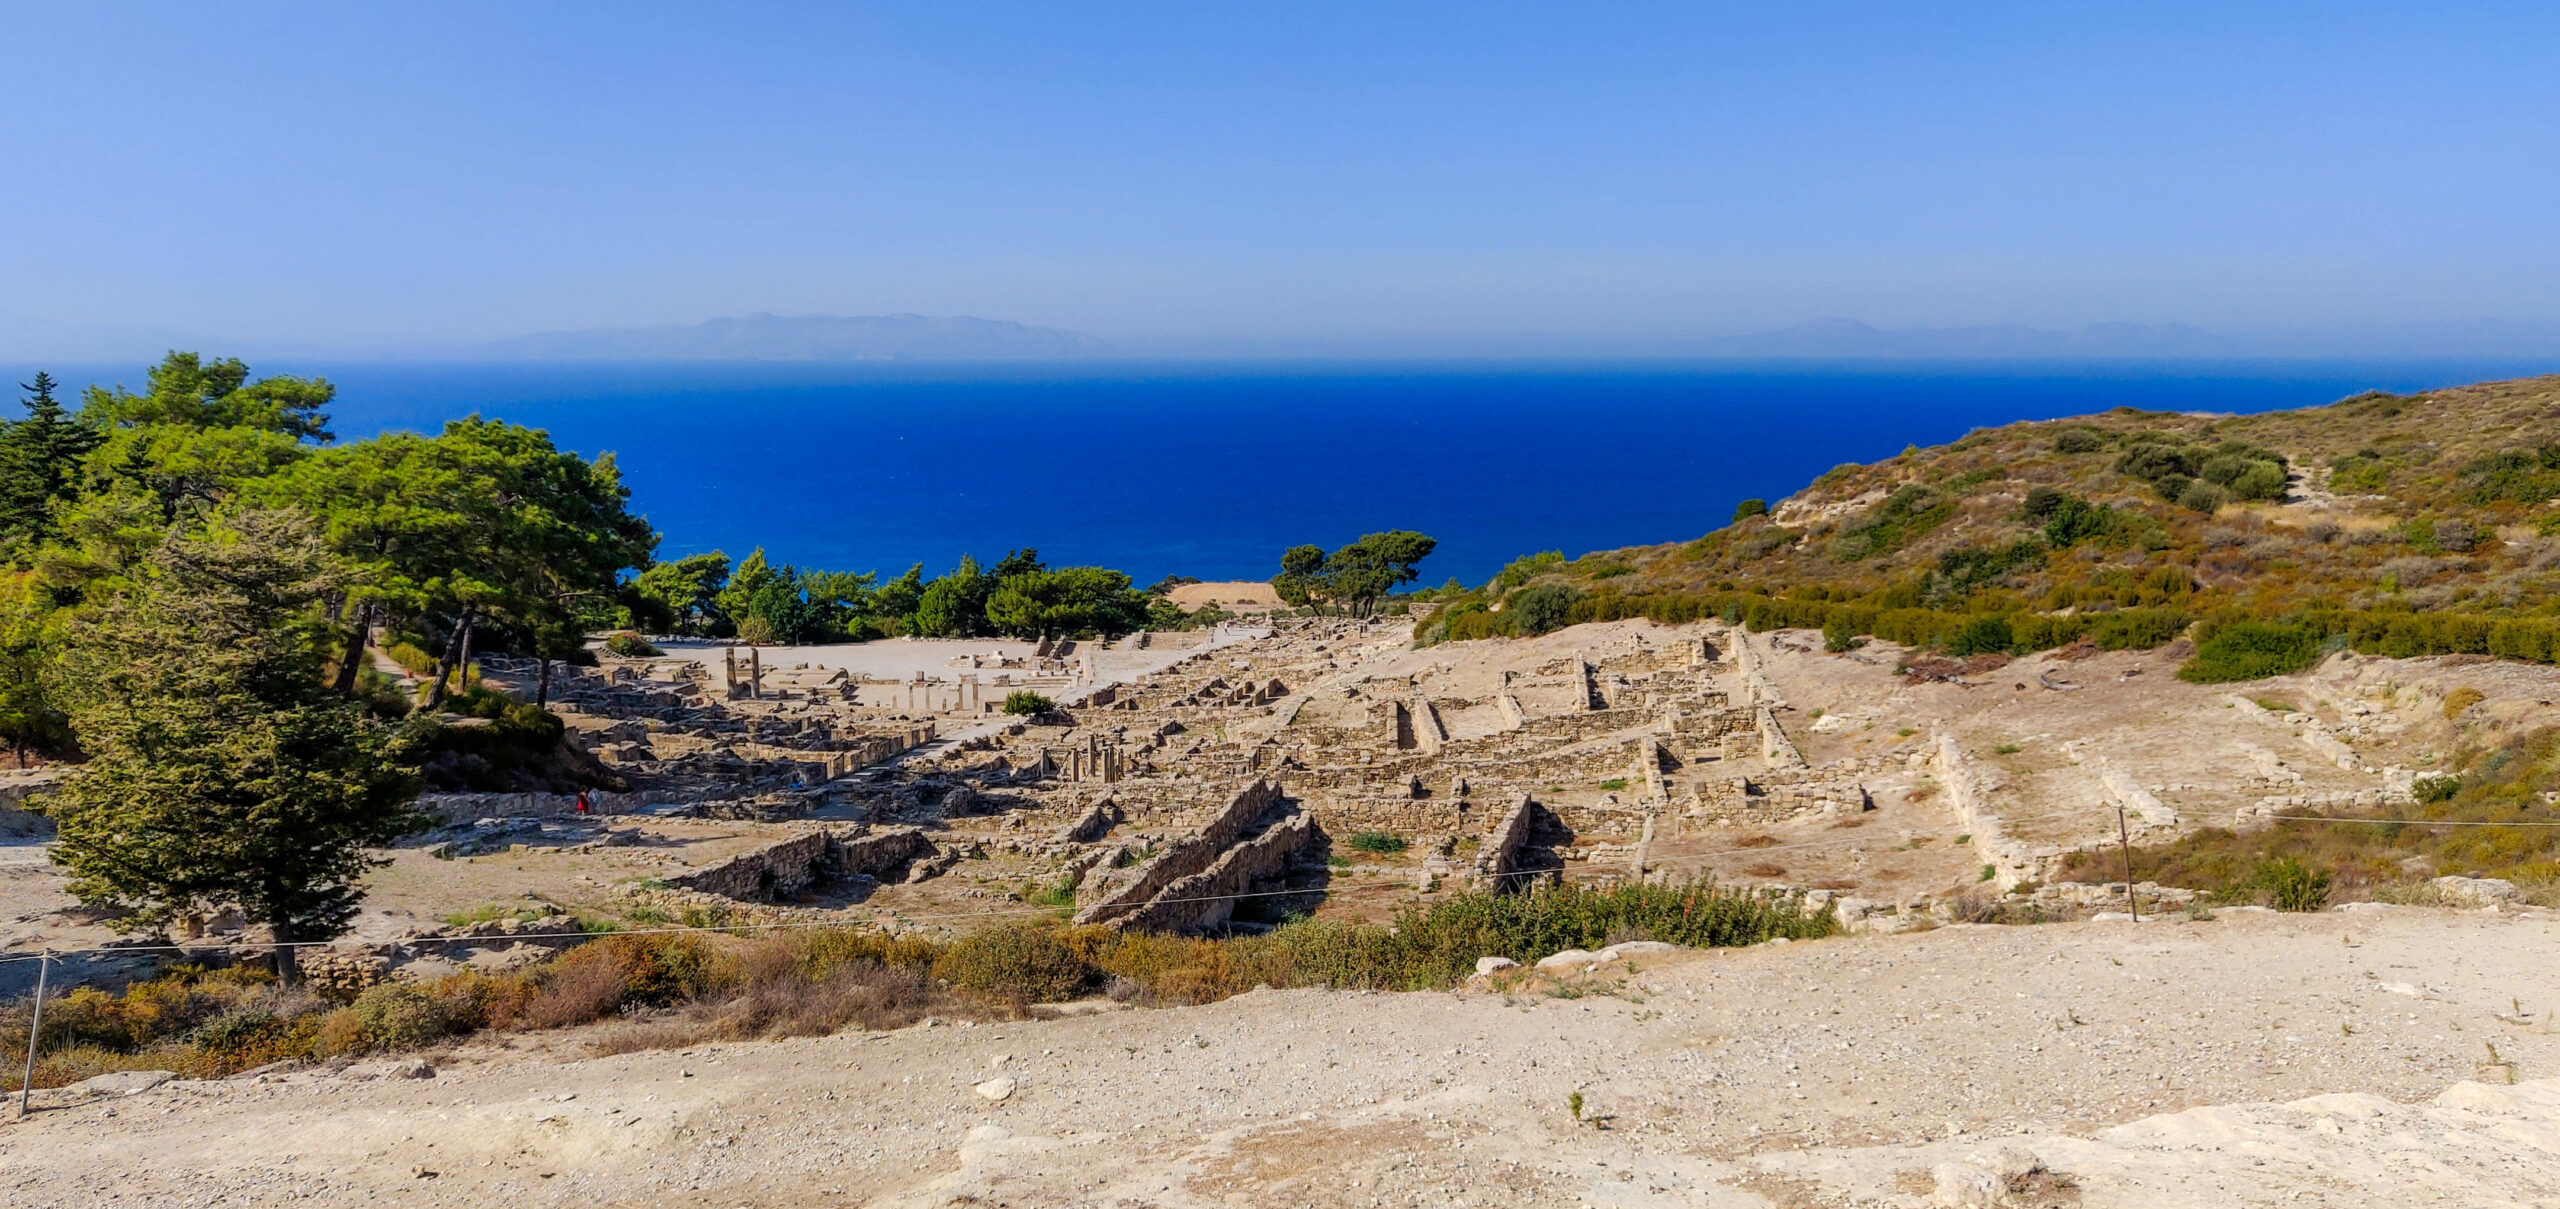 Kamiros Κάμειρος: Visit the Only Existing Intact Ancient Greek City in the World